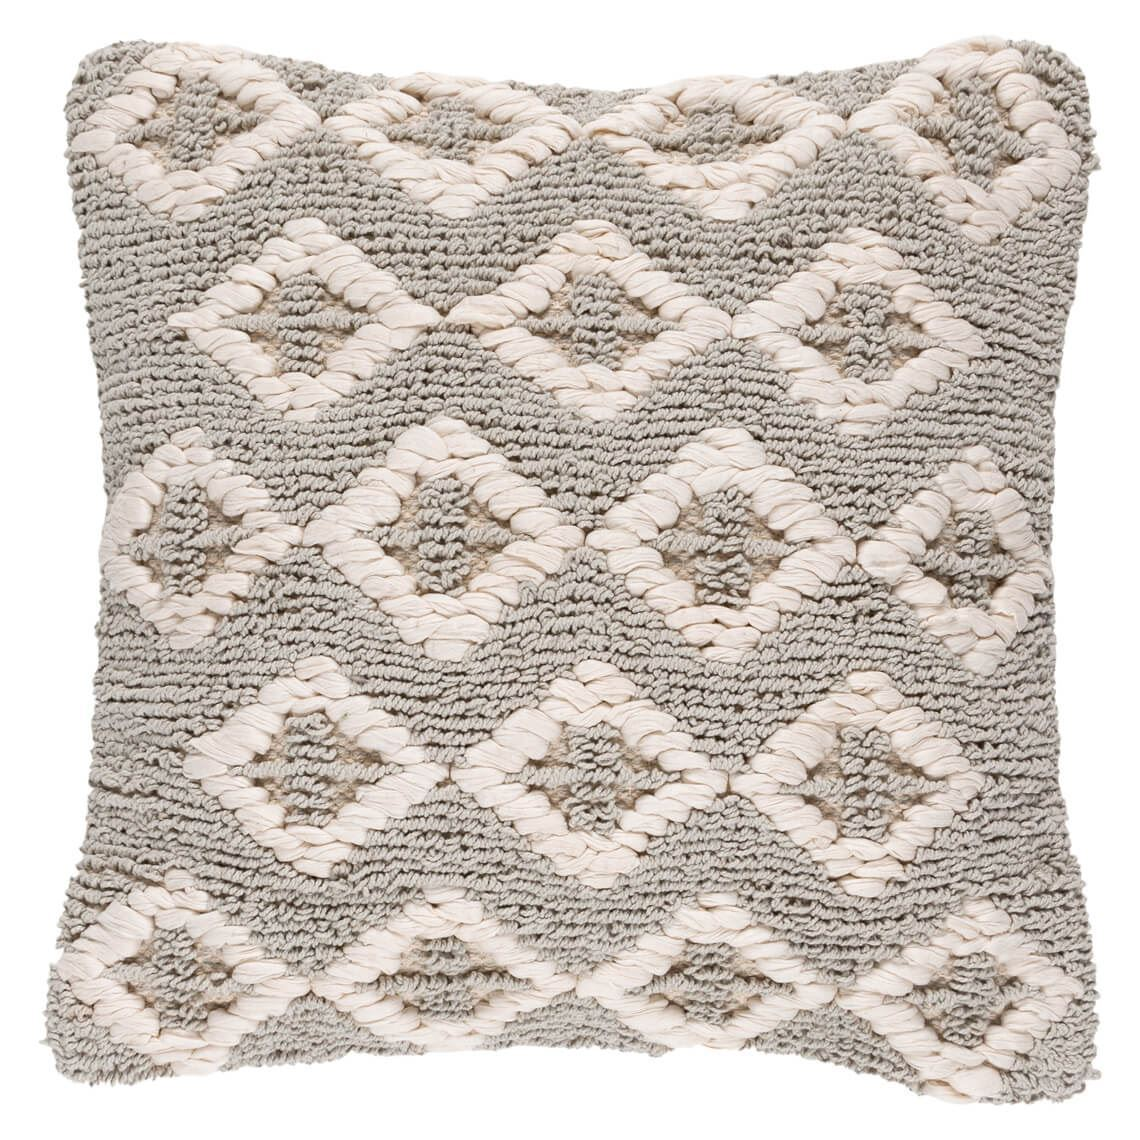 Metyme Cushion Size W 50cm x D 10cm x H 50cm in Natural/Grey Freedom